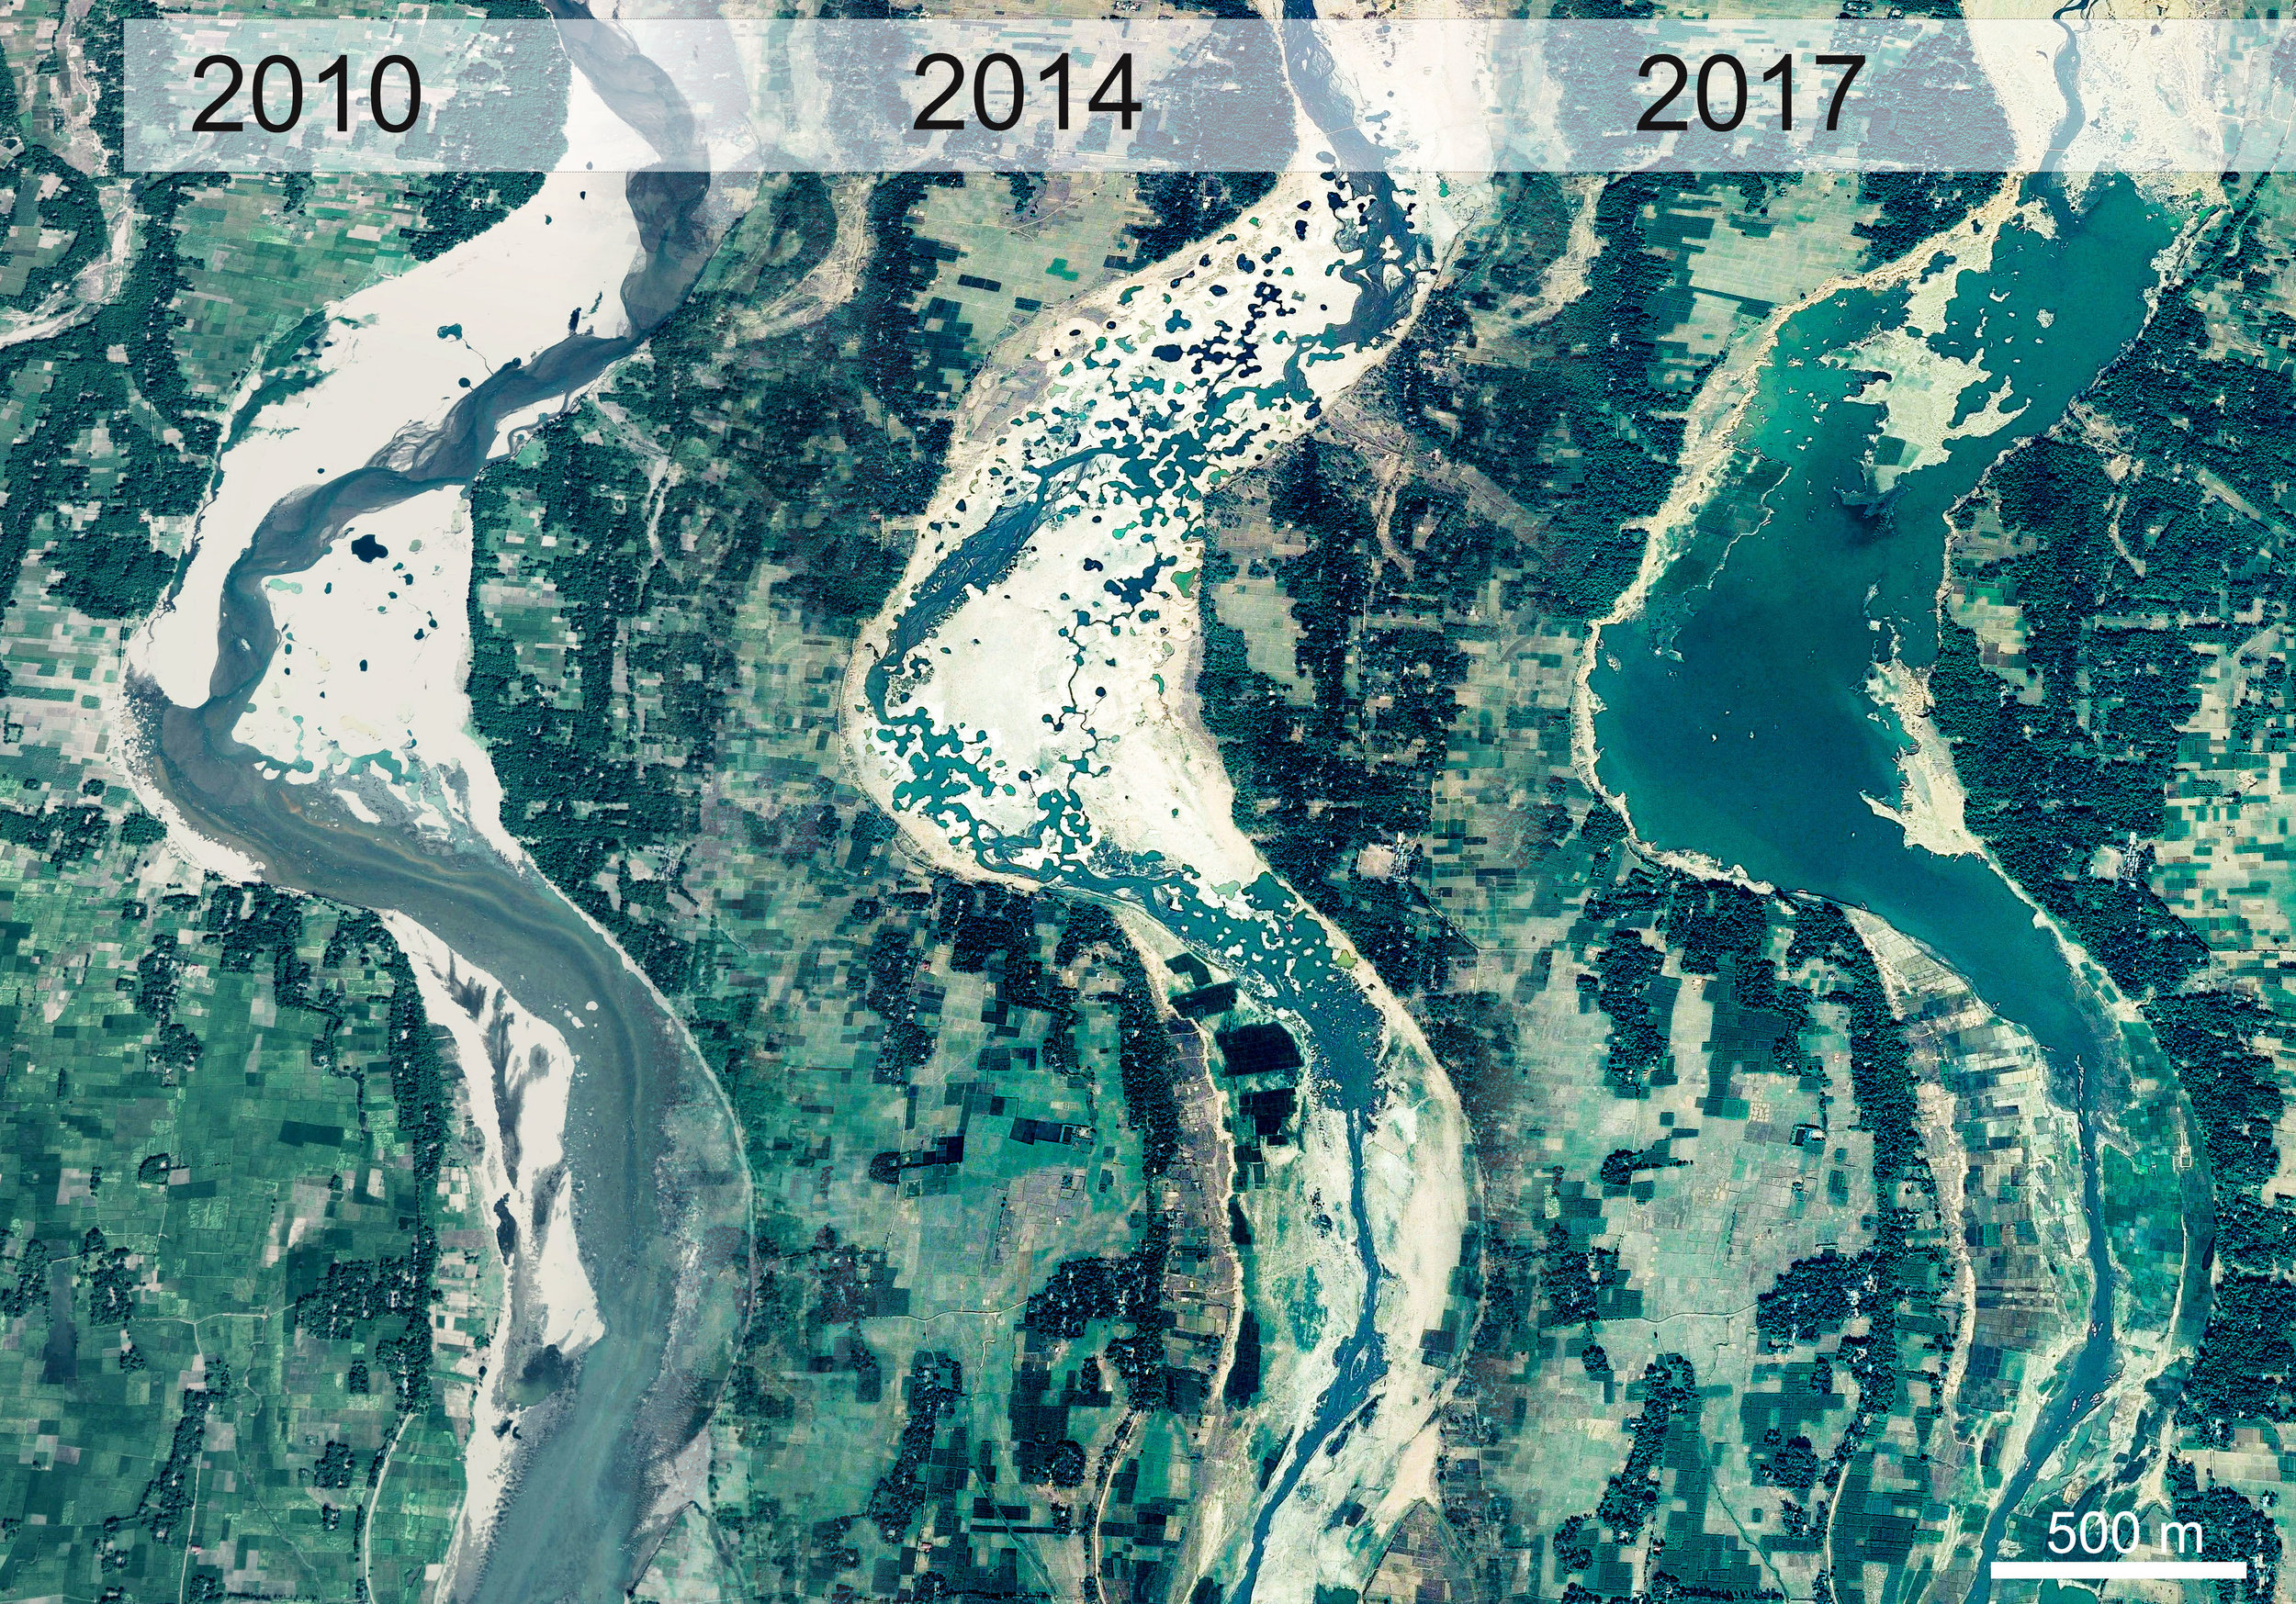 The rapidity of the effects of alluvial gravel and sand mining: Eight years of increasing mining activities on part of the Wah Umngi River, northern Bangladesh. Images courtesy Google Earth.